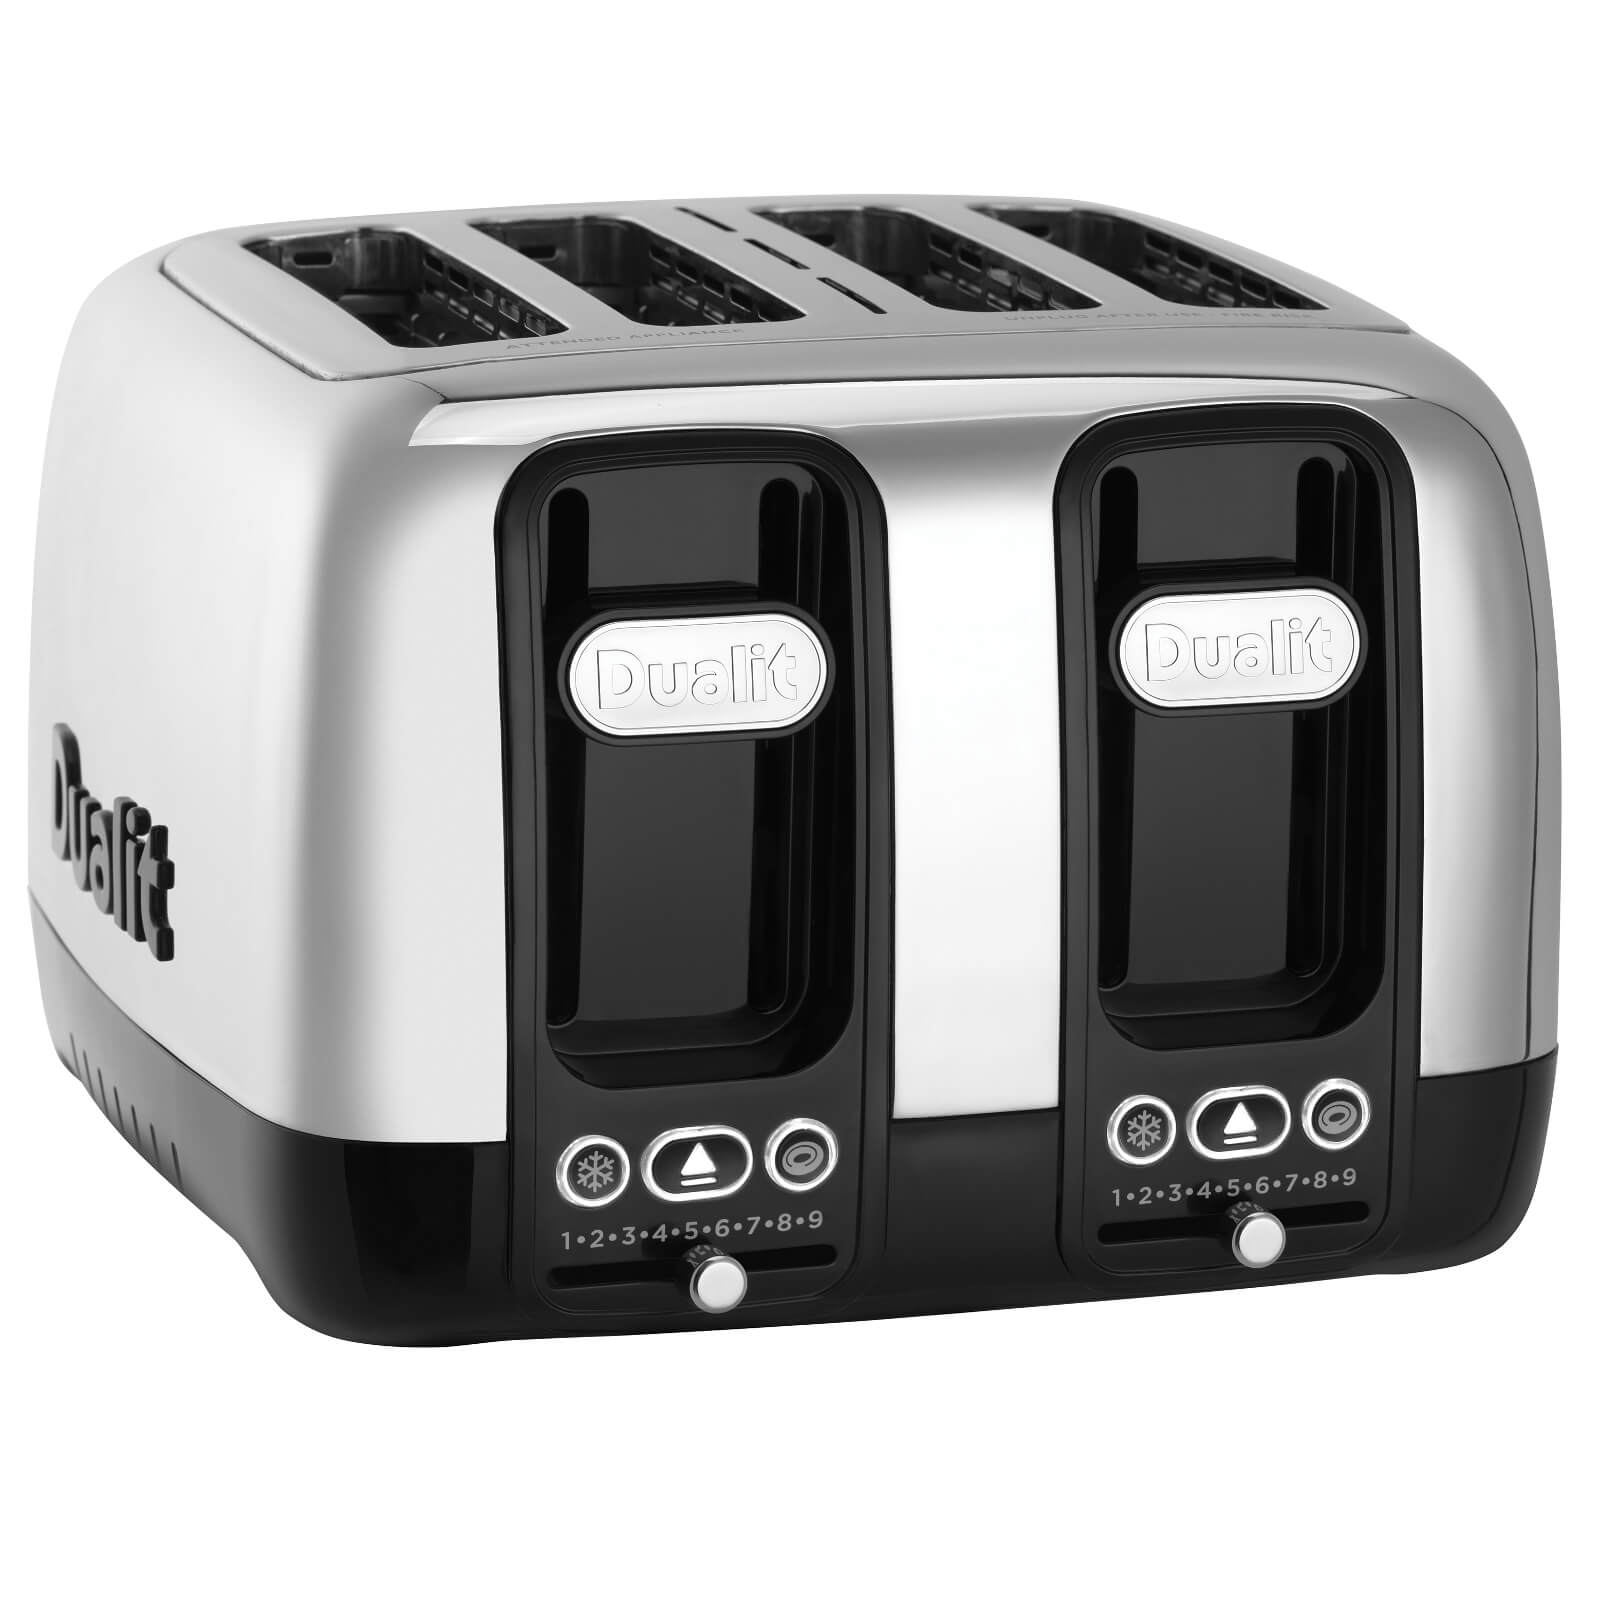 Dualit 46600 Domus 4 Slot Toaster - Polished Steel/Black